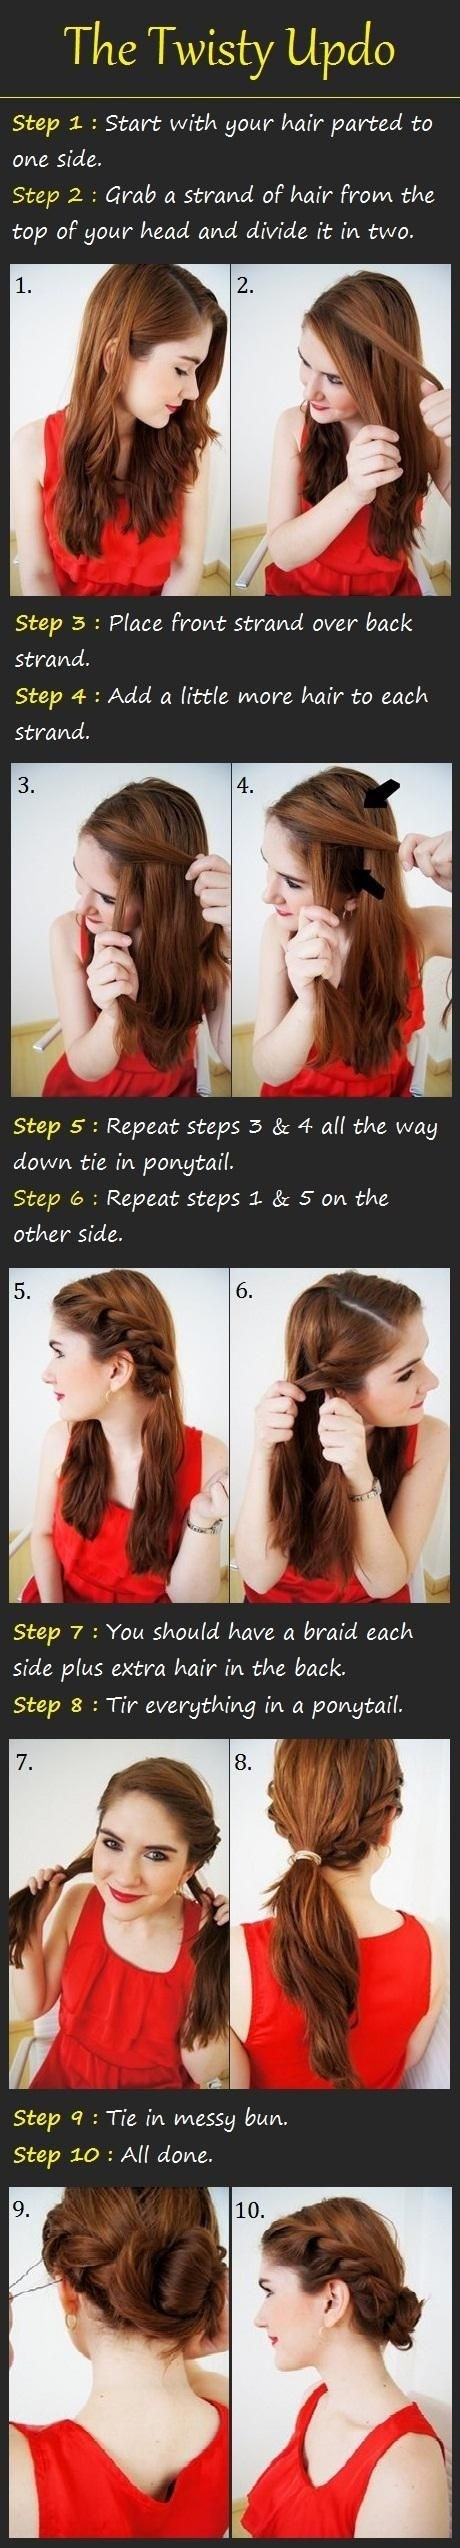 Nizza Updo Frisuren Tutorials: Braid Twist Hochsteckfrisur